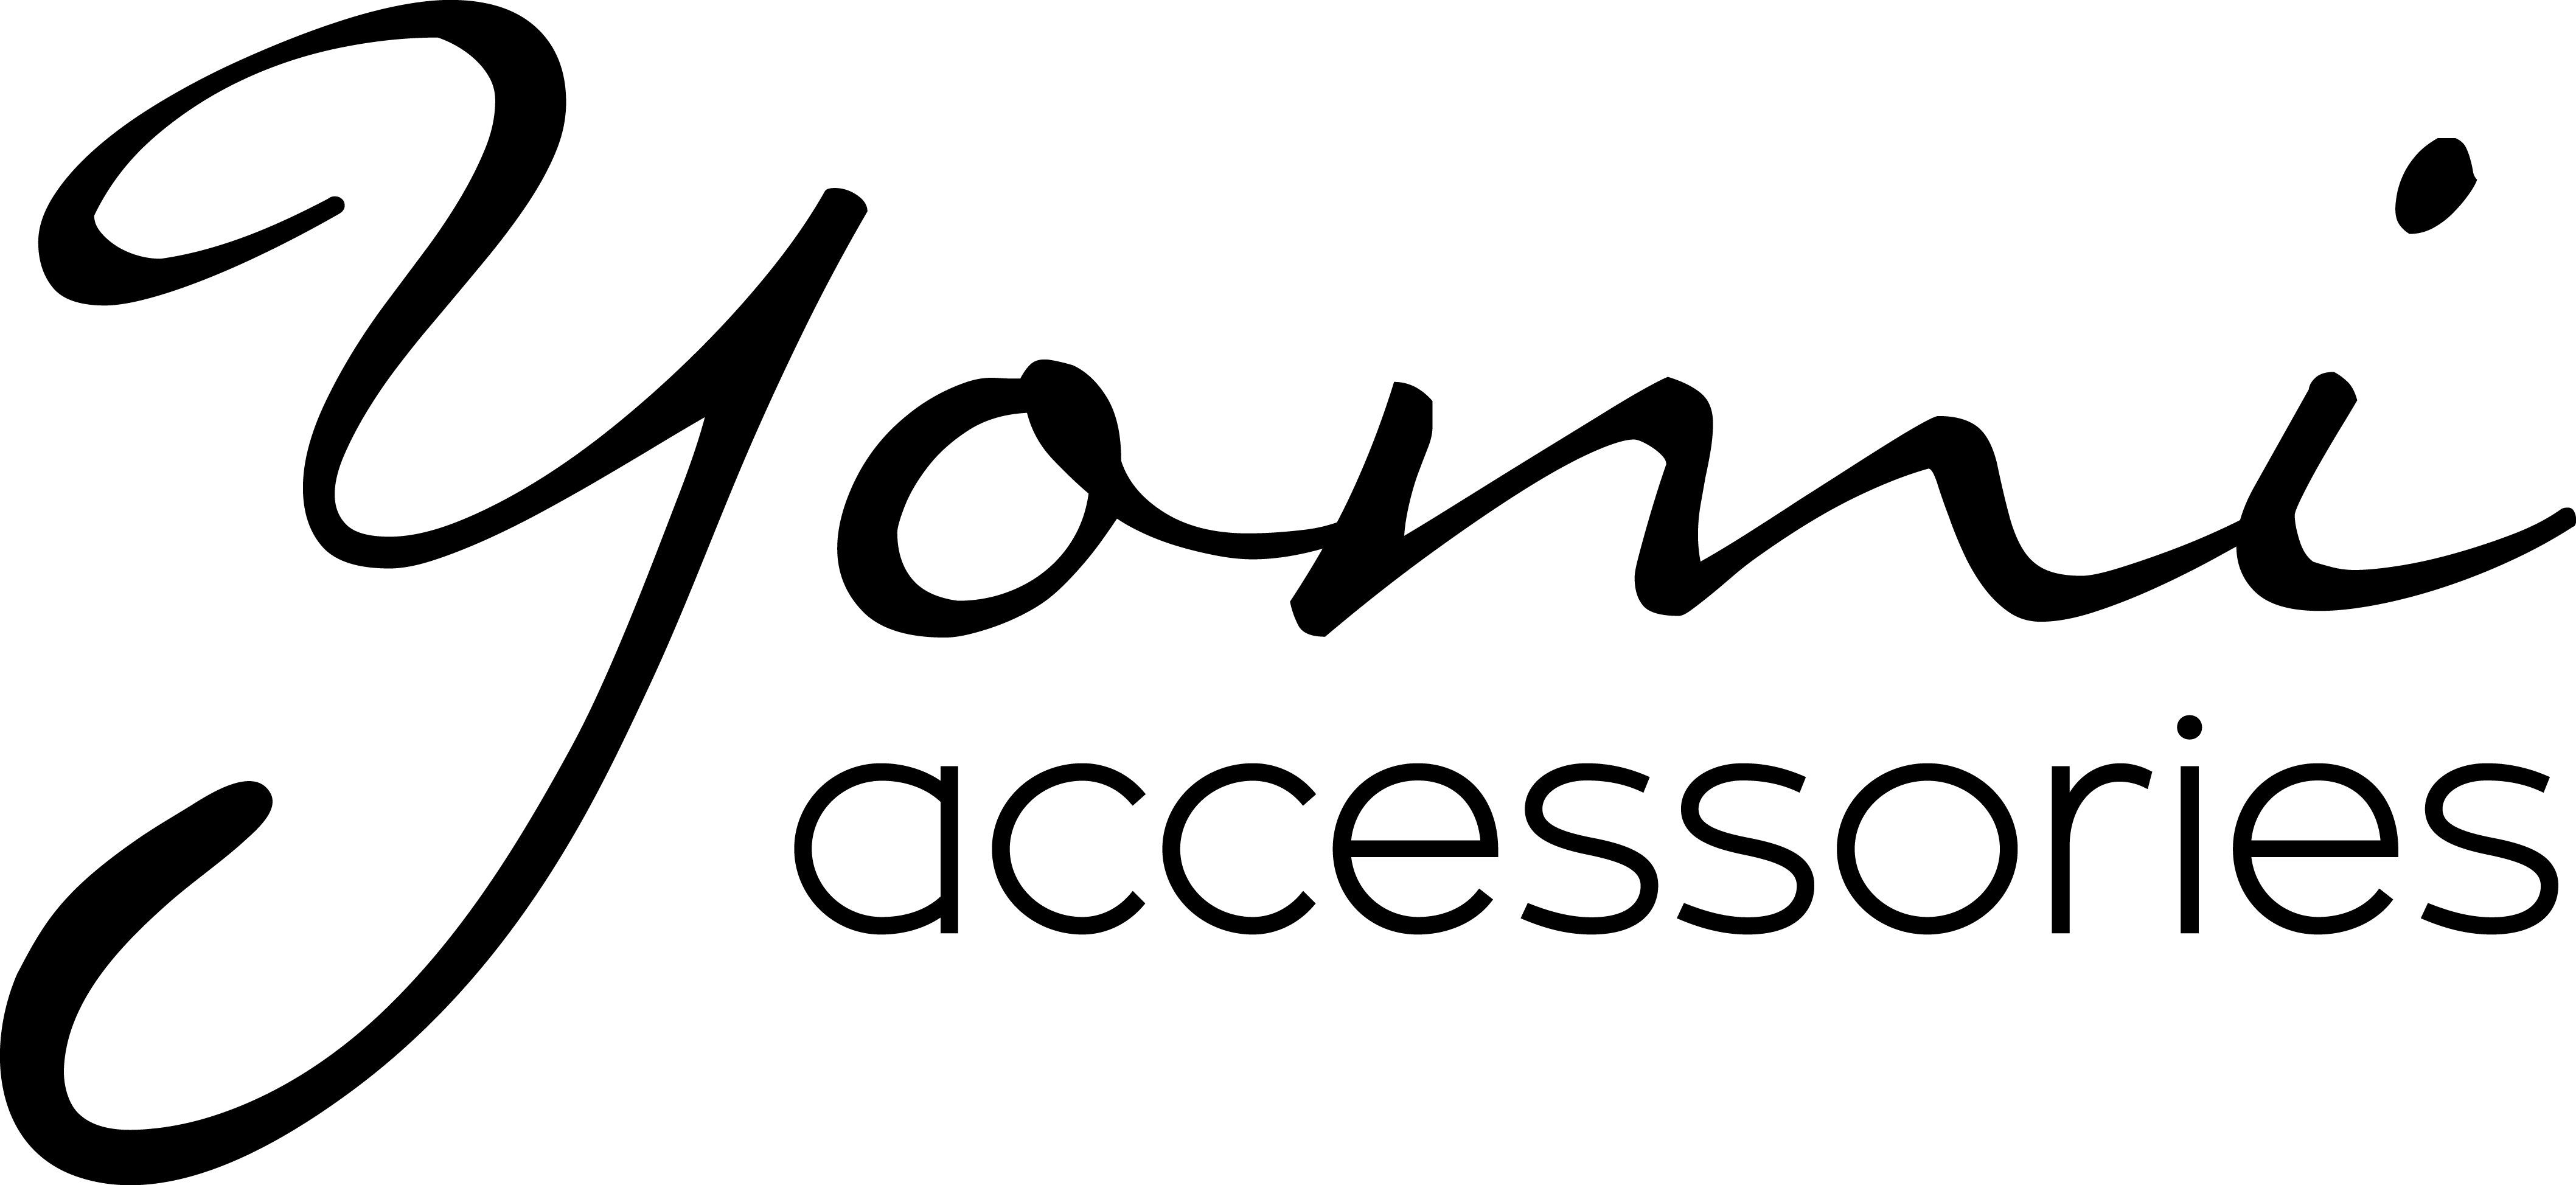 Yomi Accessories - Woman Accessories